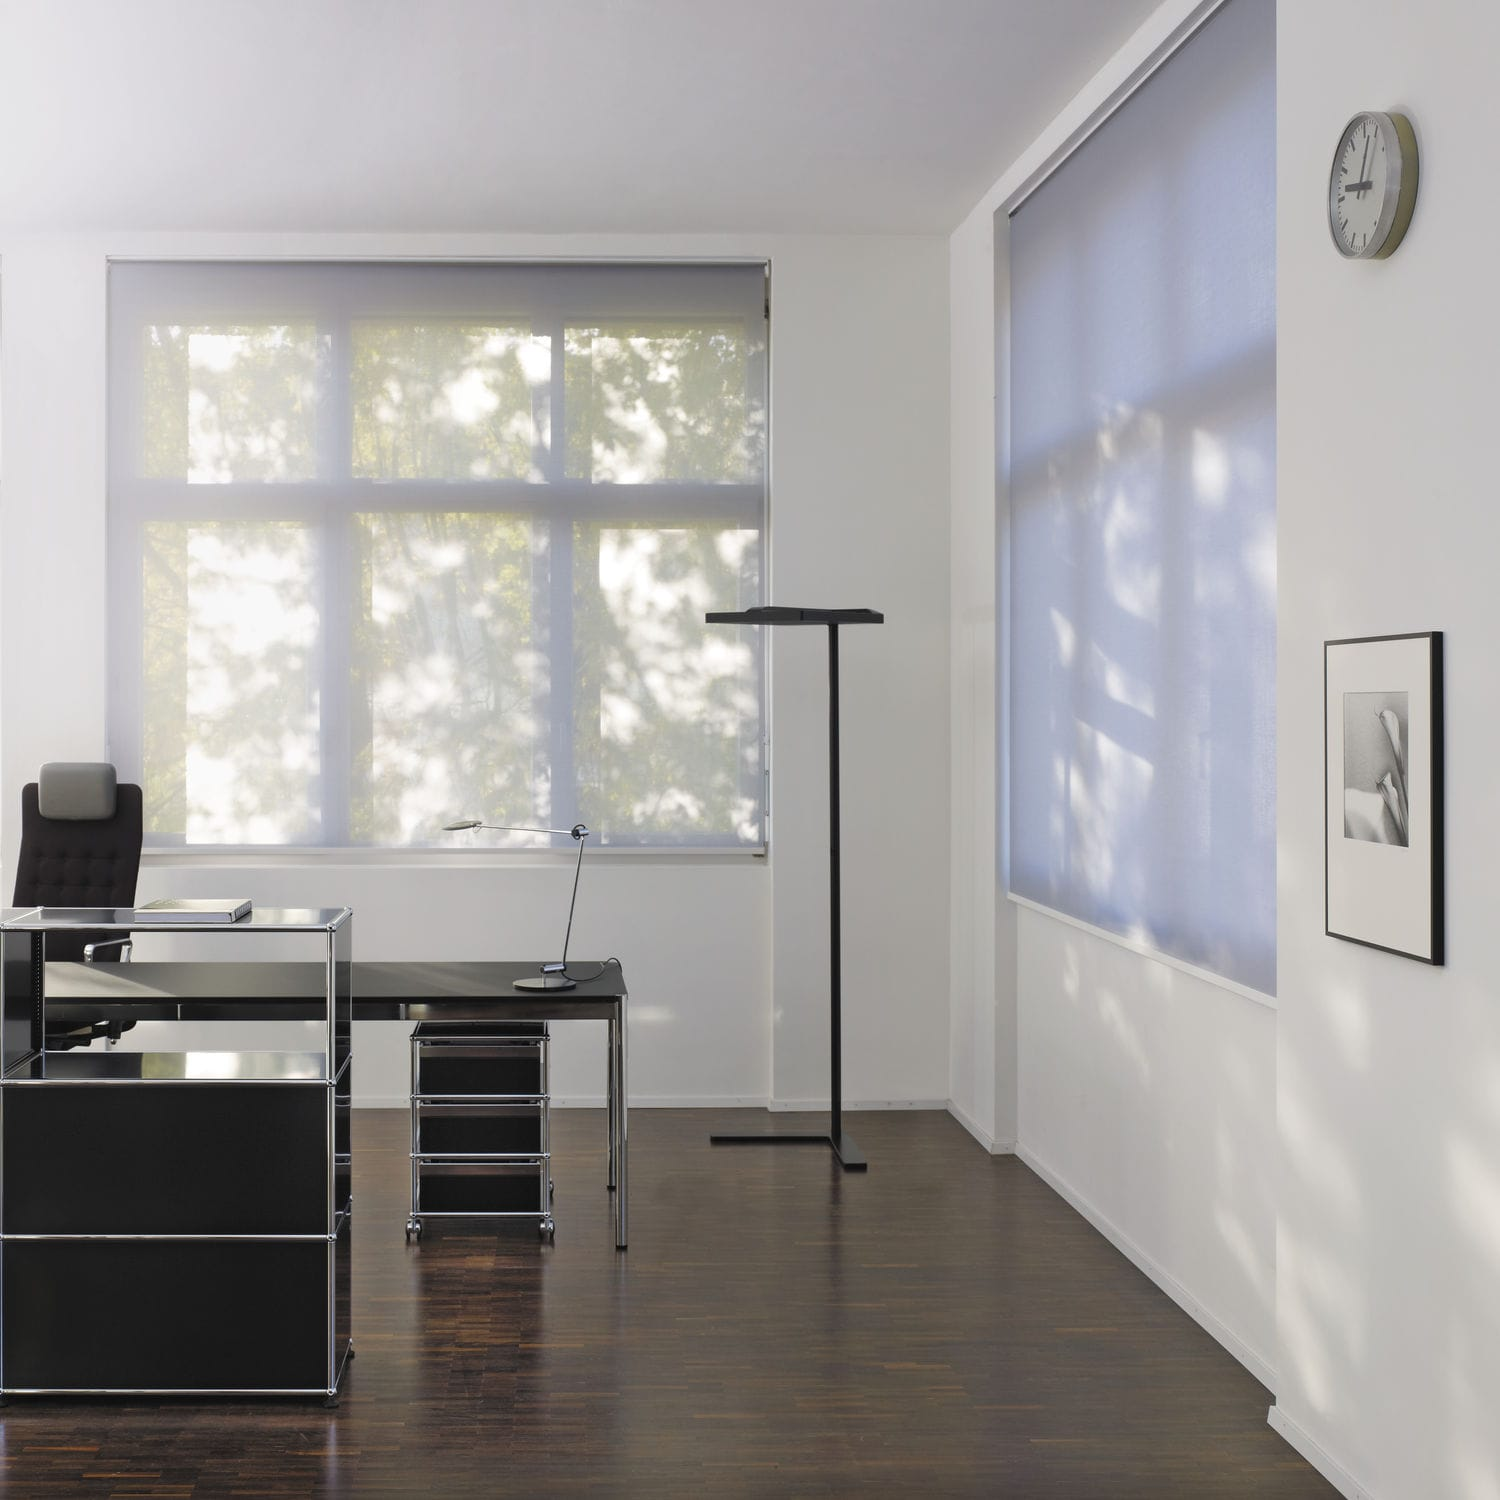 window shutters home zebra treatments item room dual custom shades from curtains sheer look roller to wood translucent for horizontal blind size shade blinds cut living in